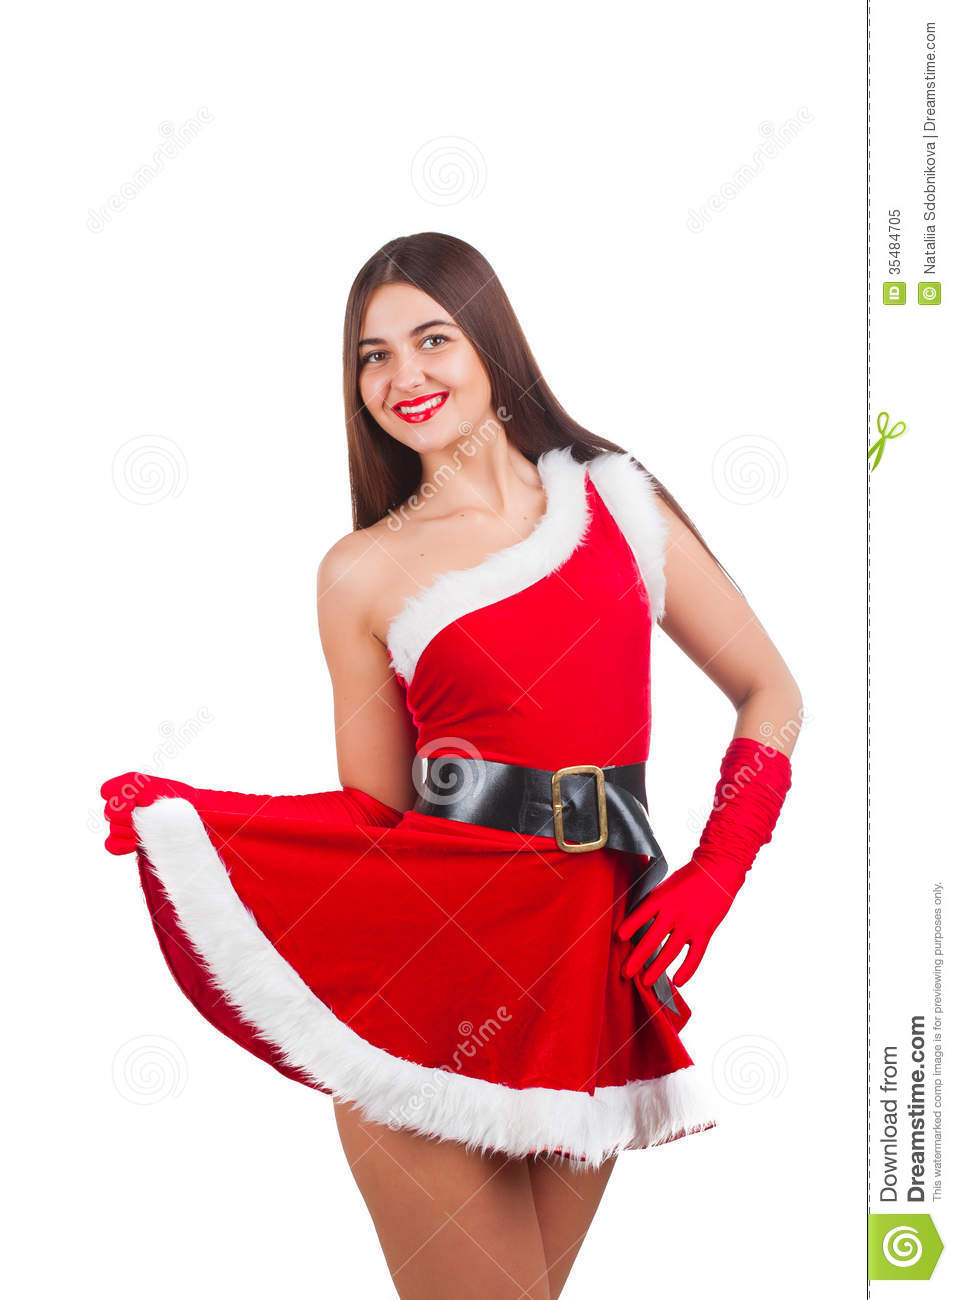 Pic Of Beautiful Shining Porcellain Kitchen Floors Tiles: Beautiful Girl In Santa Costume Stock Image